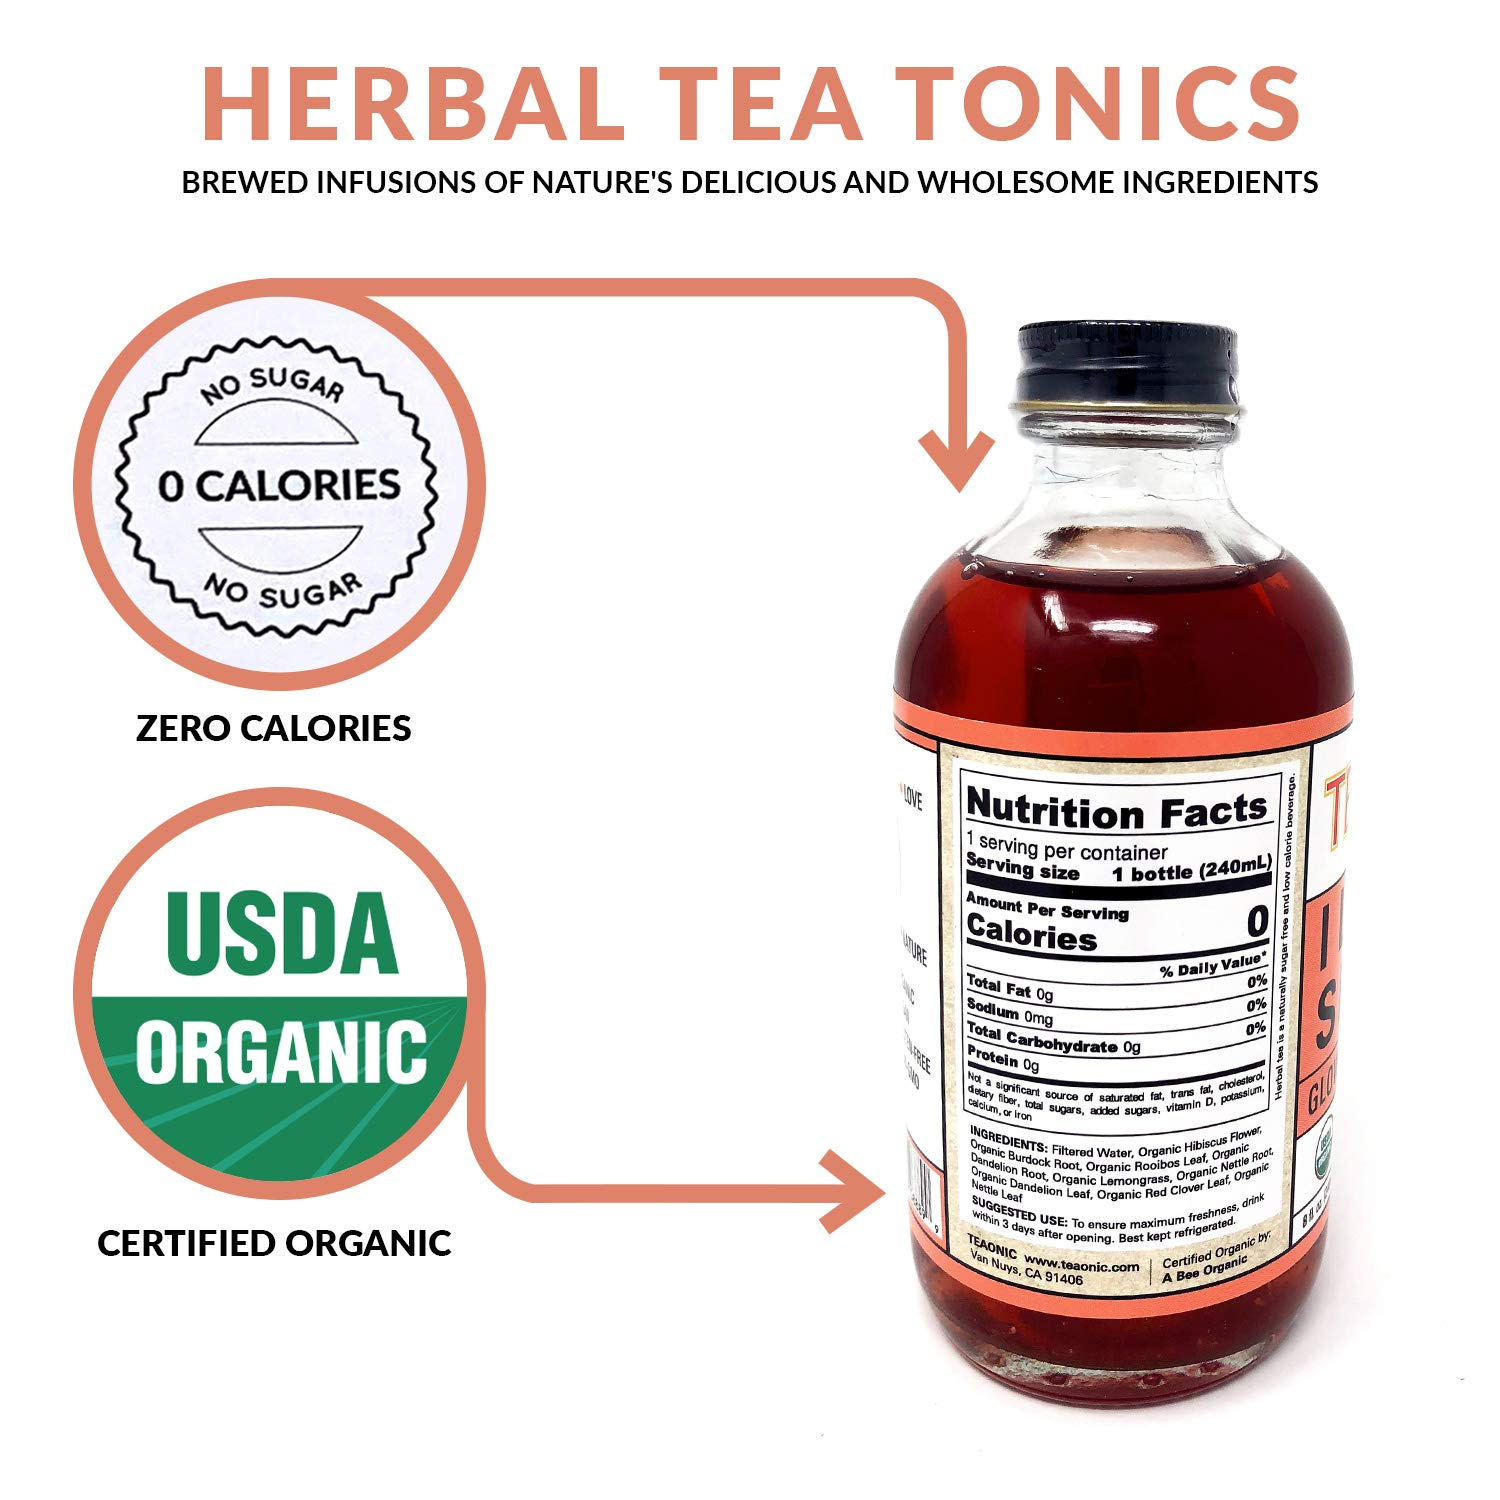 Teaonic Herbal Tea | I Love My Skin for Radiant Glow | Zesty Hibiscus & Lemongrass (12 Pack) by Teaonic (Image #4)